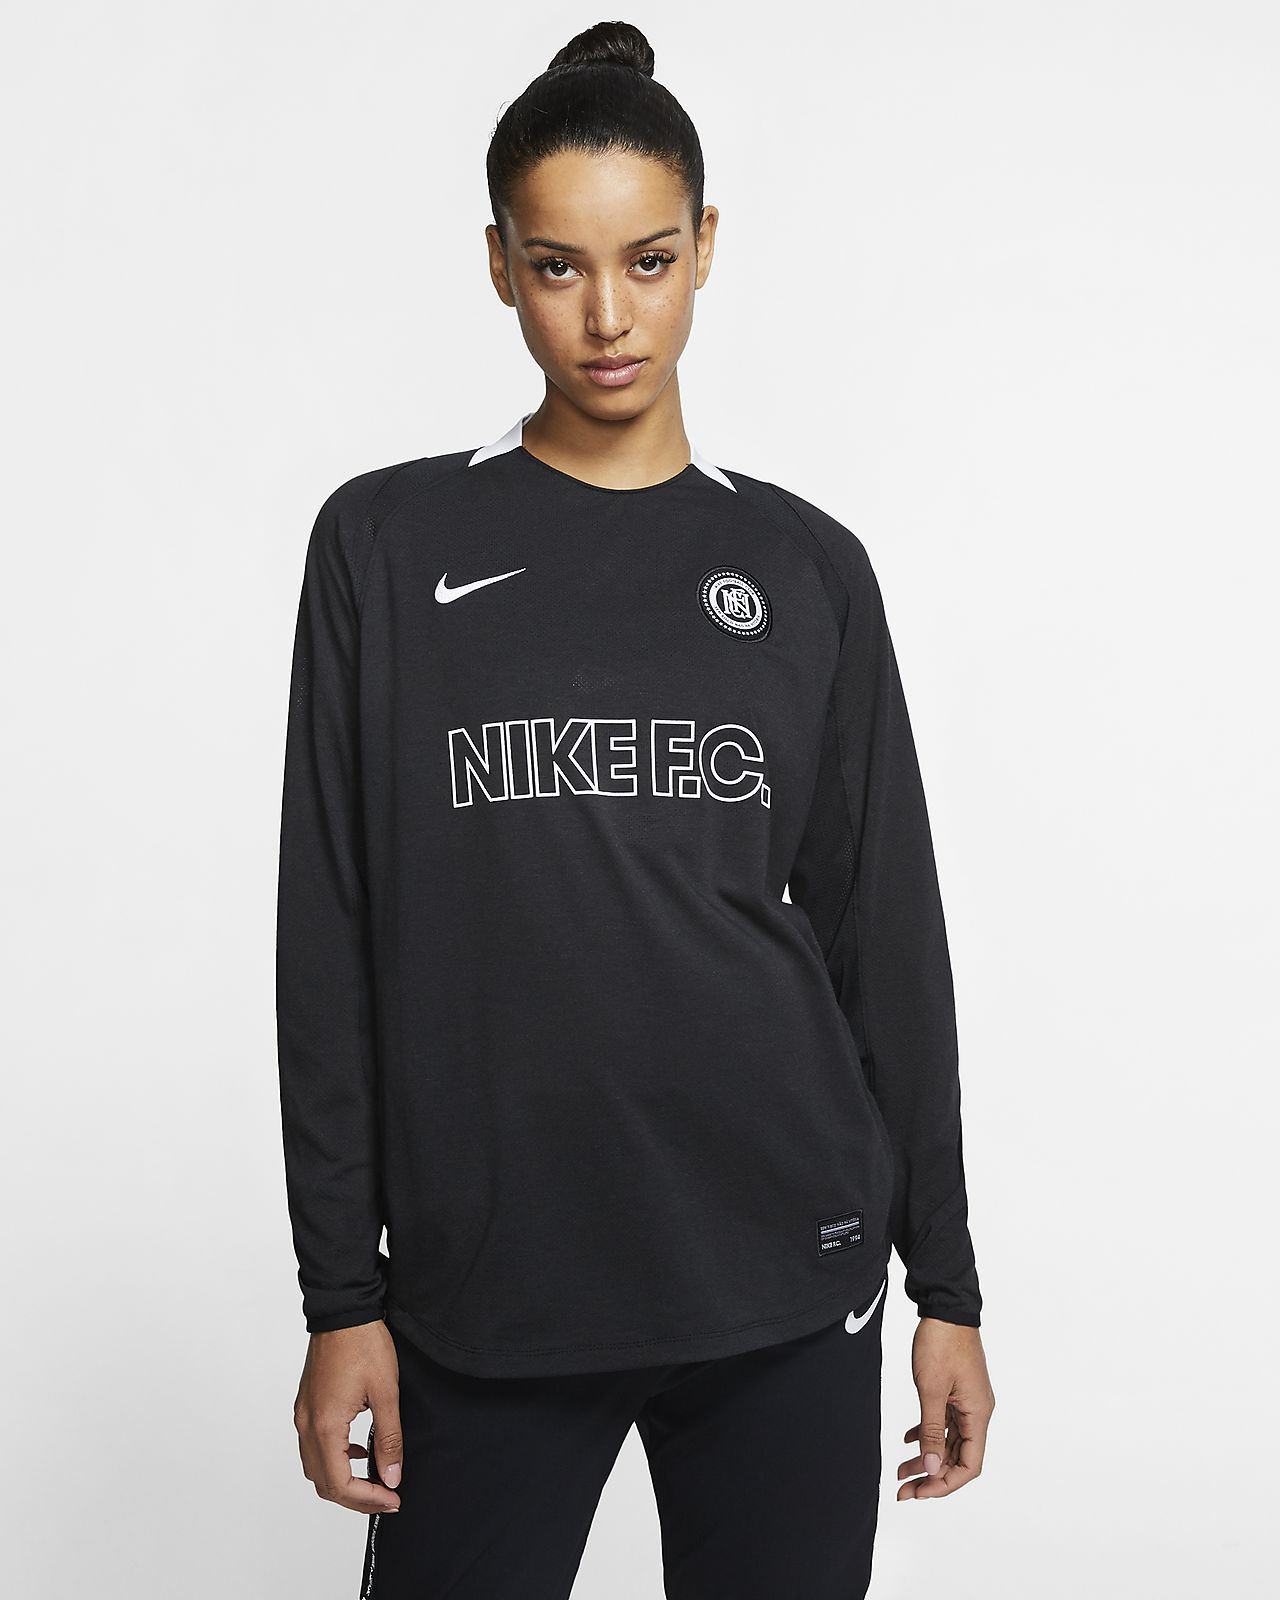 Nike F.C. Women's Long-Sleeve Football Shirt